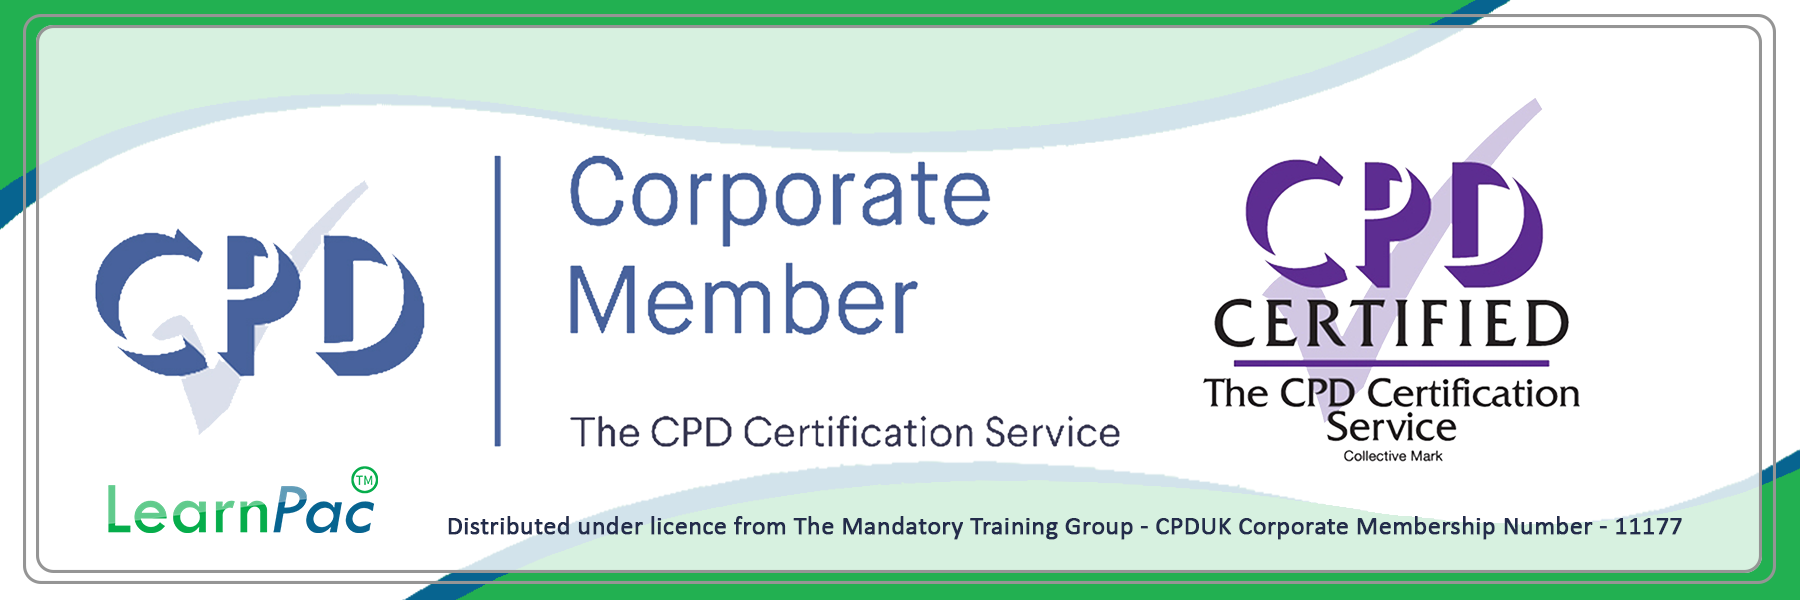 Infection Prevention and Control - Train the Trainer Course + Trainer Pack - E-Learning Courses - LearnPac Systems UK -